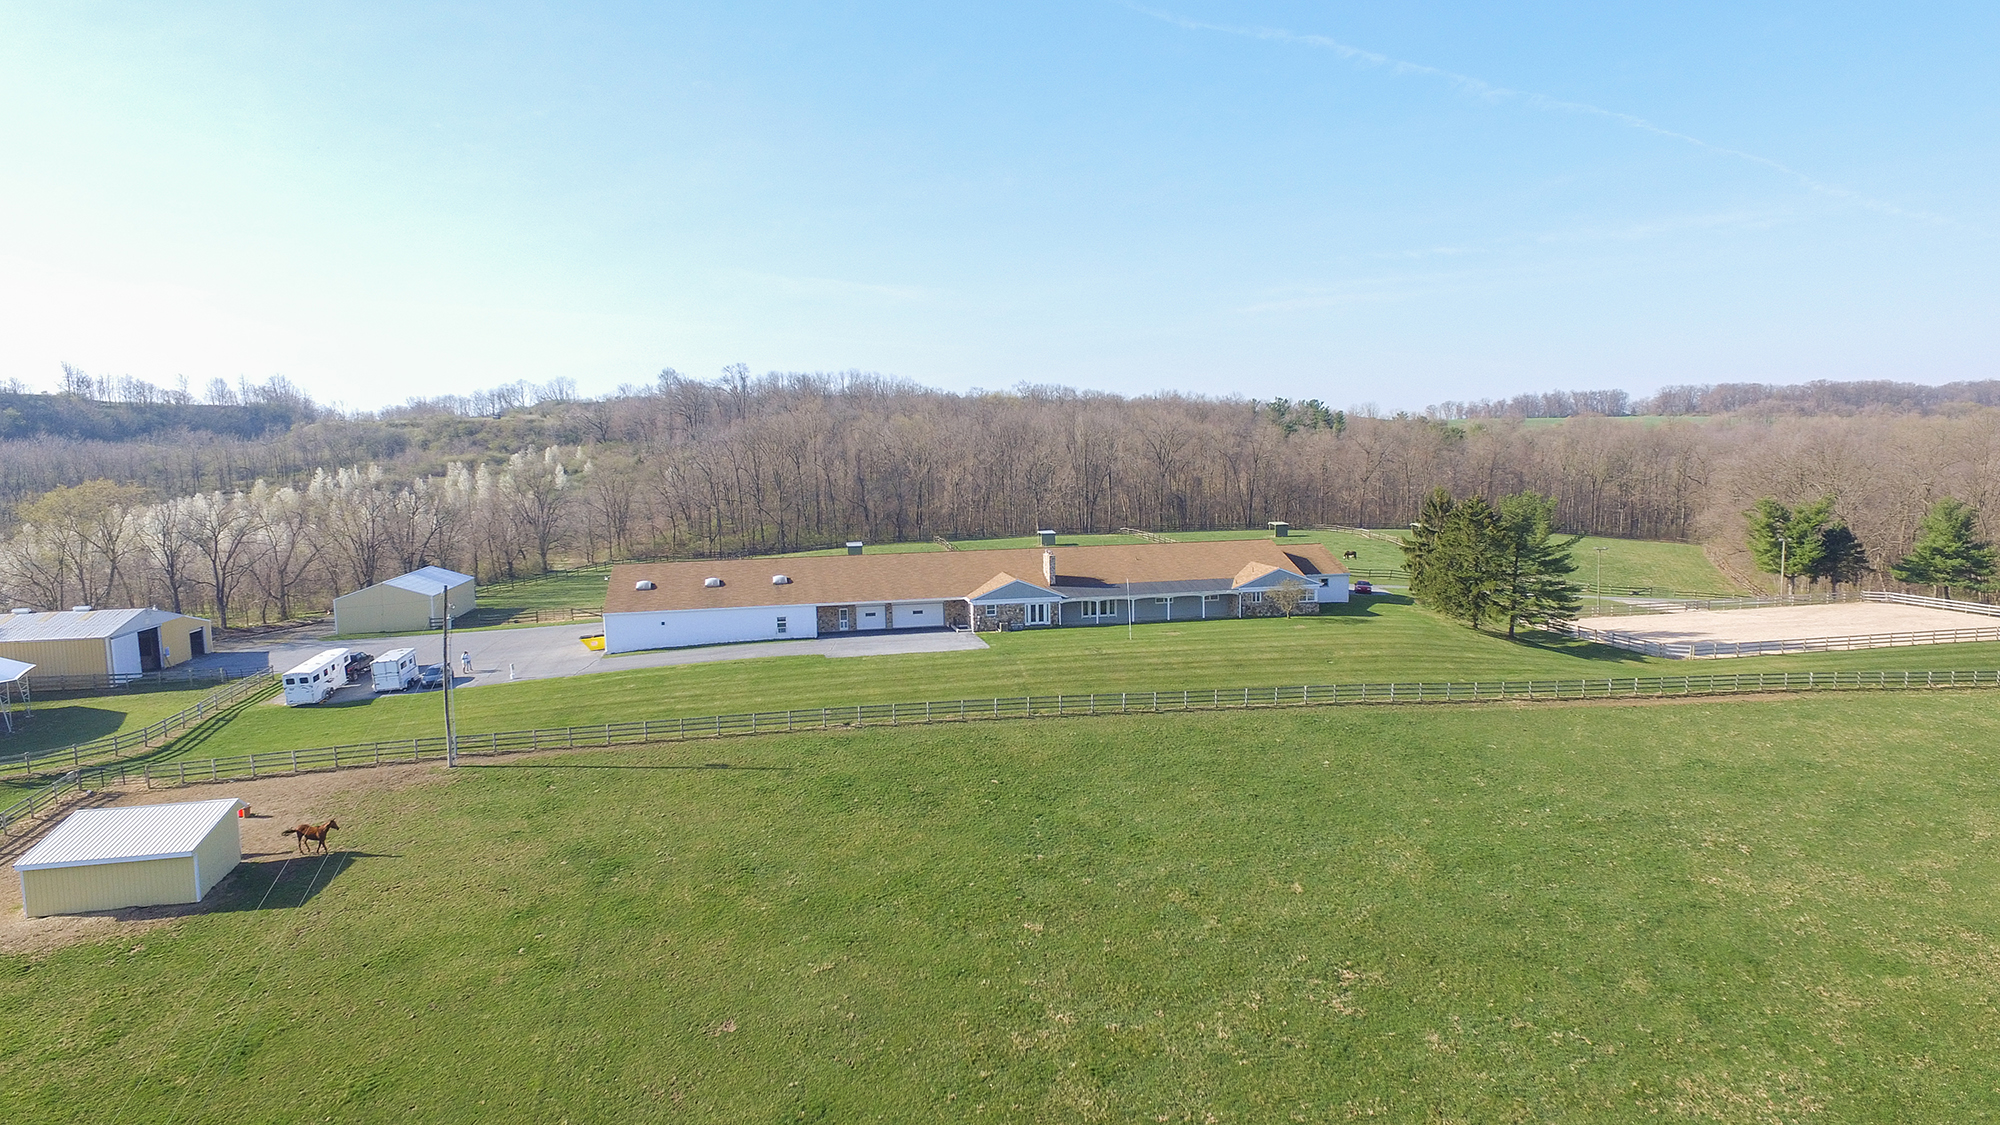 Additional photo for property listing at 2 Carson Lane 2 Carson Lane Annville, Pennsylvania 17003 Estados Unidos